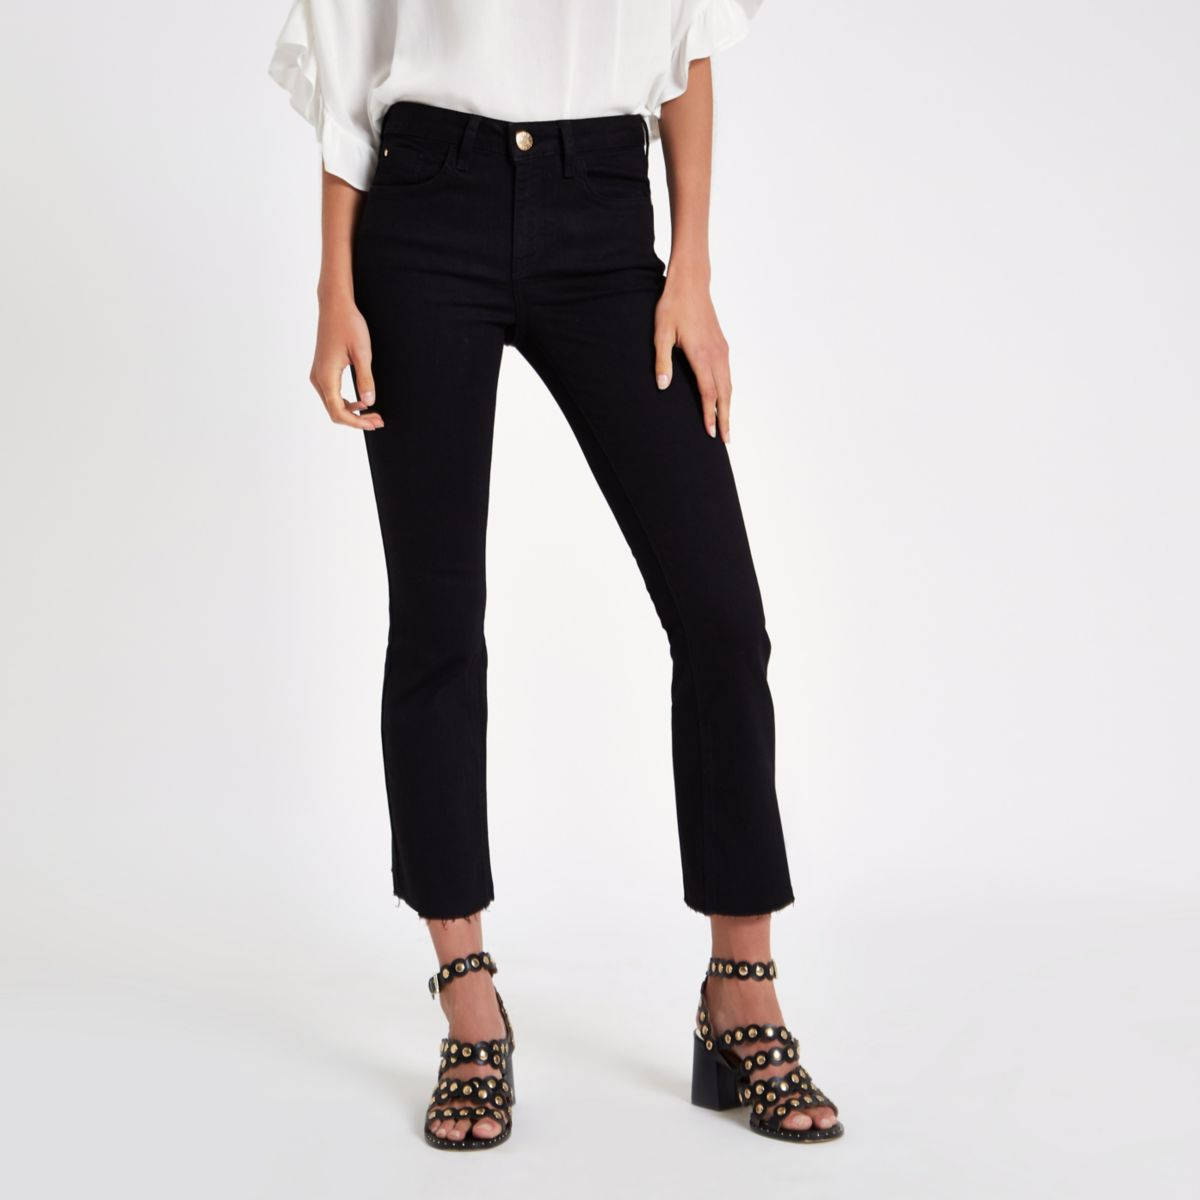 Black denim cropped flare jeans